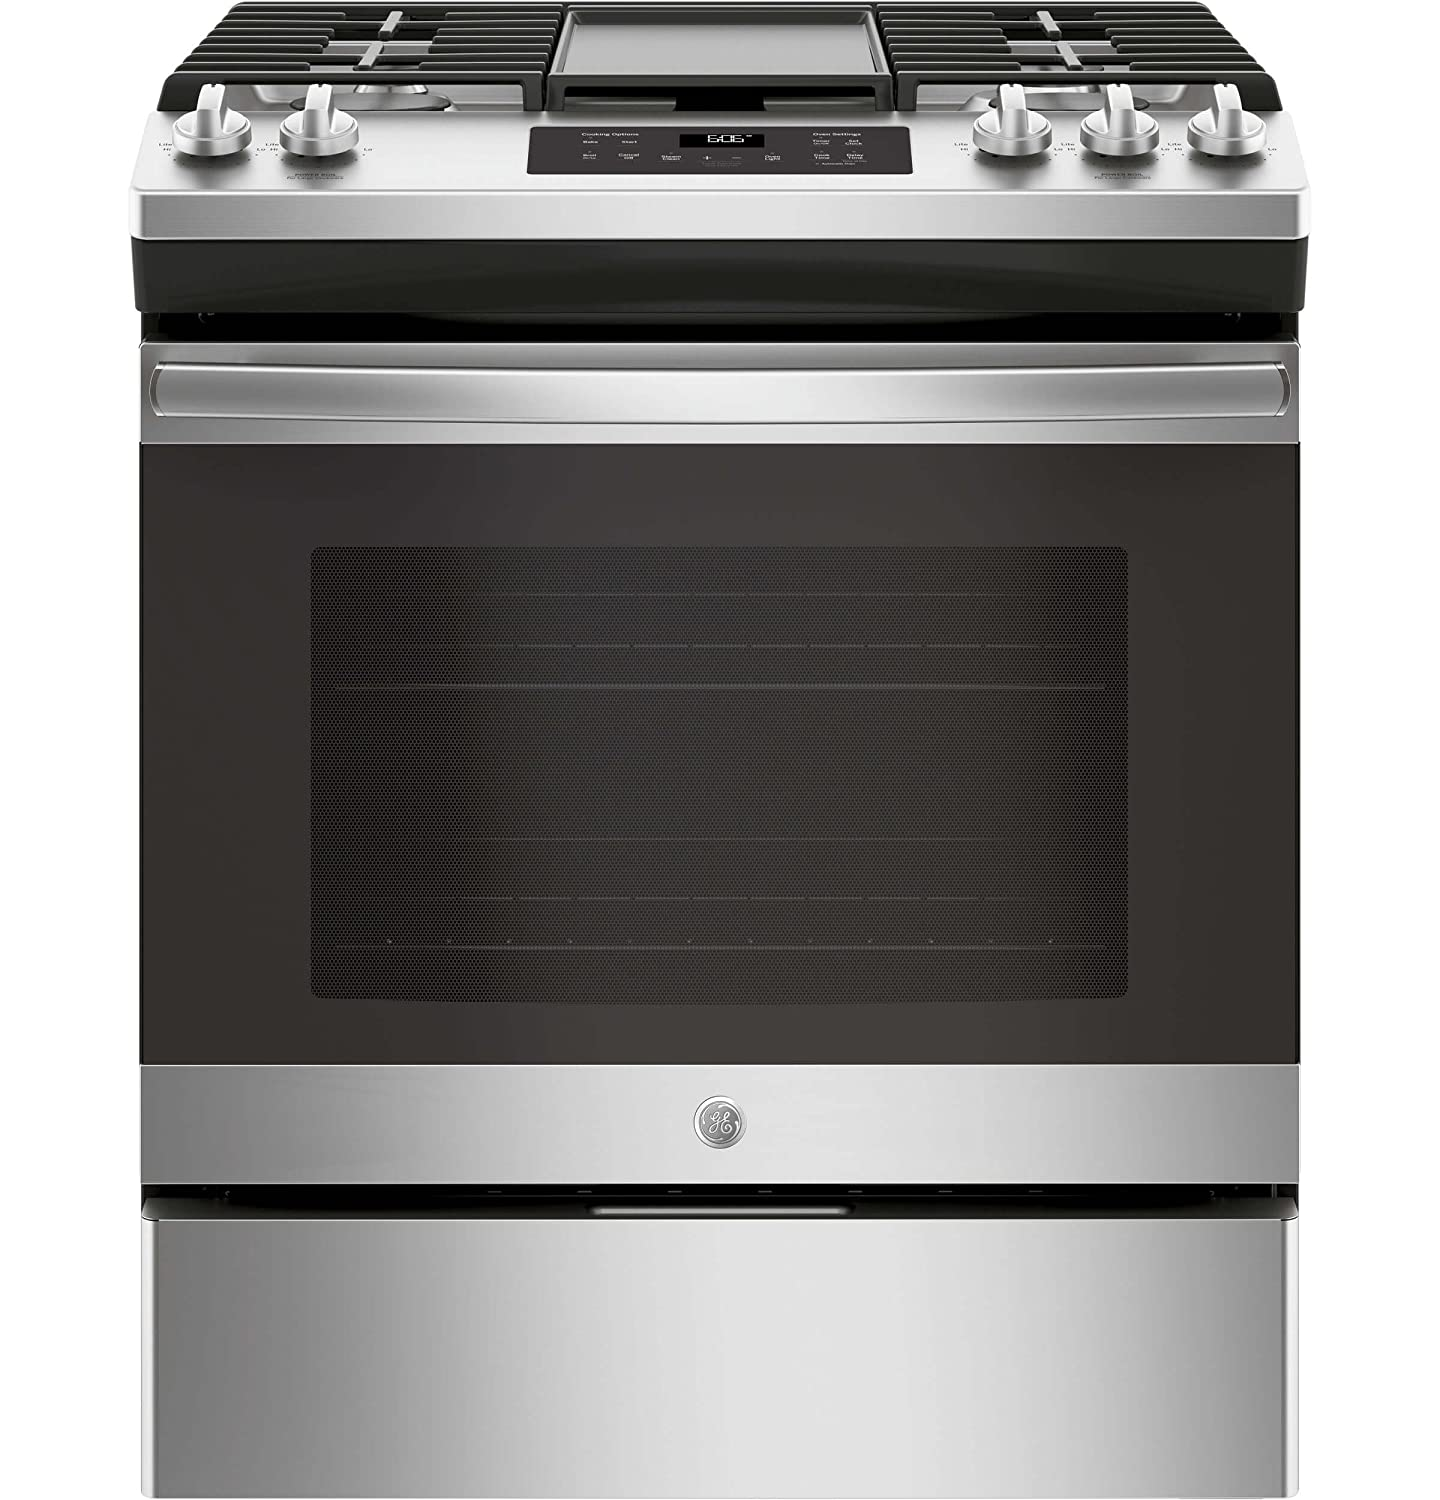 GE JGSS66SELSS 30 Inch Slide-in Gas Range with Sealed Burner Cooktop, 5.6 cu. ft. Primary Oven Capacity, in Stainless Steel G.E.